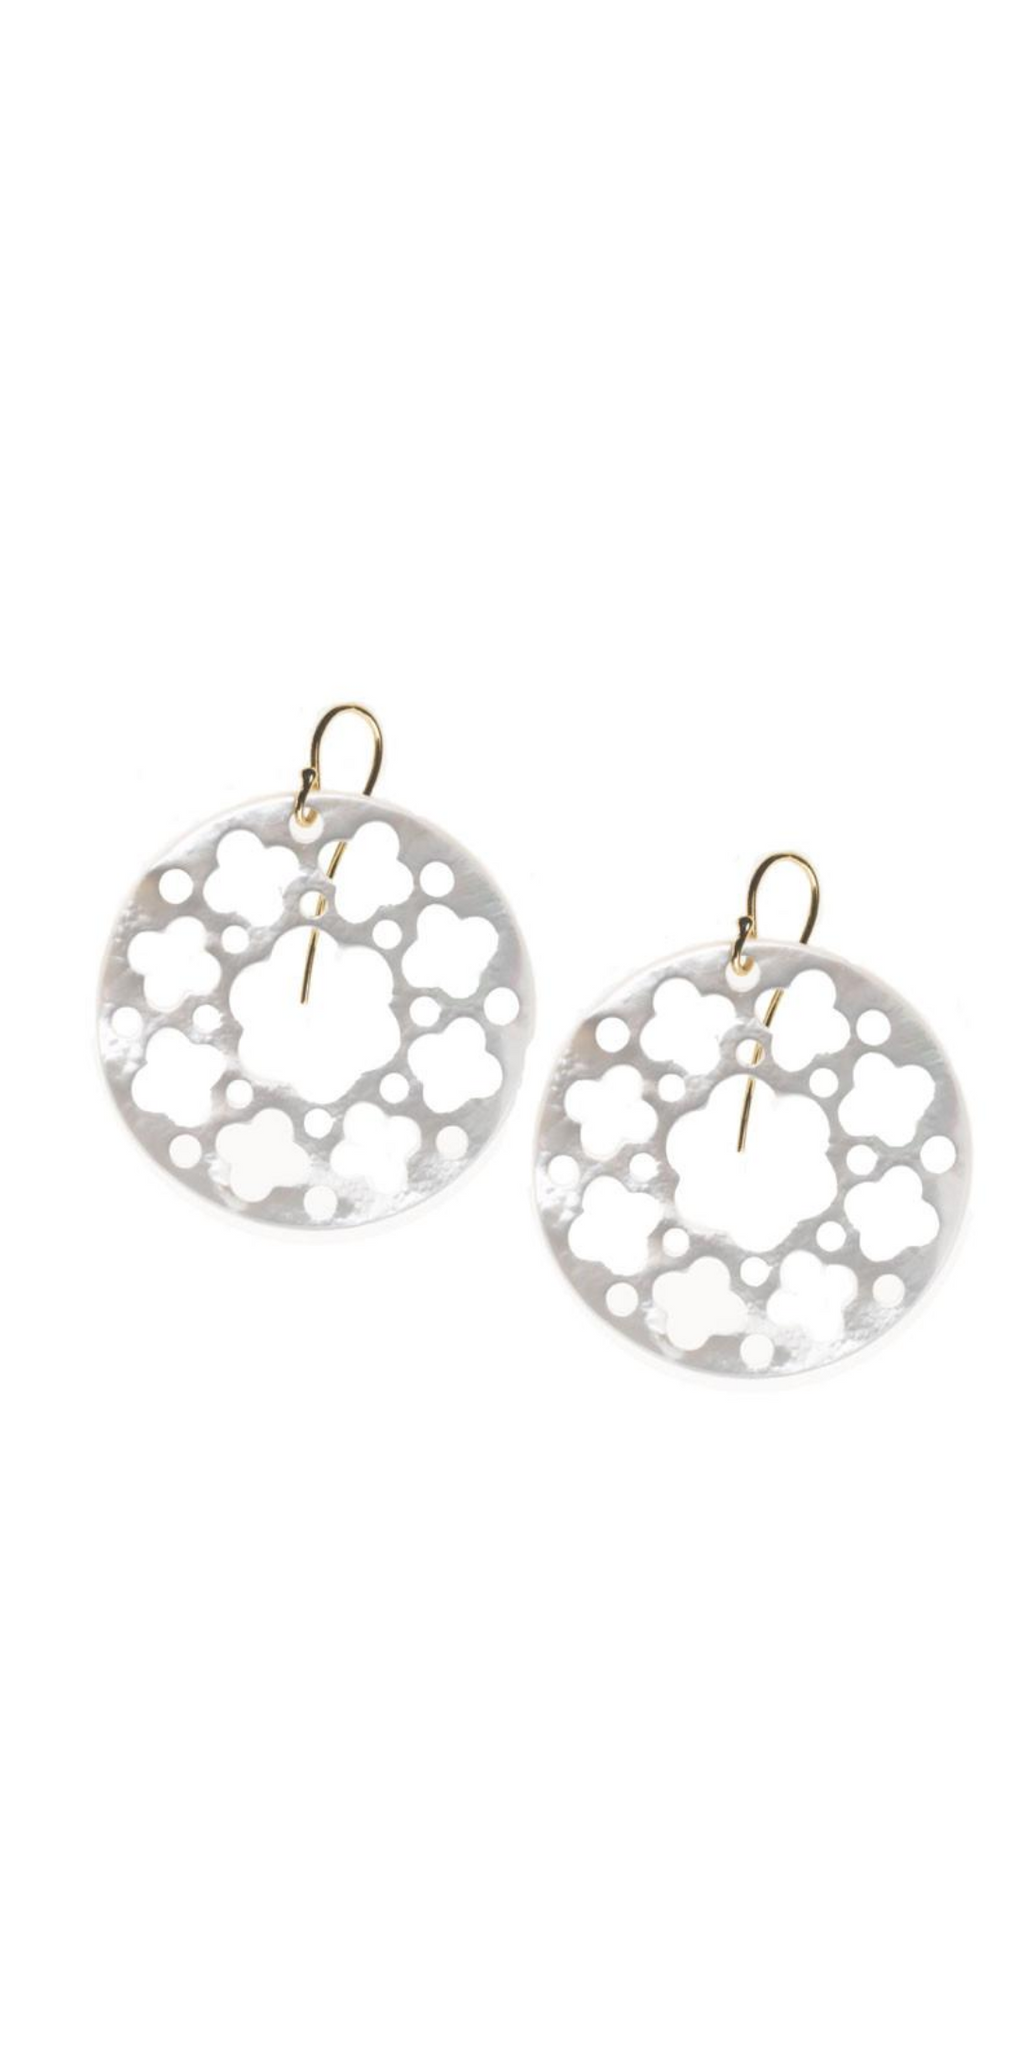 Carlotta Earring-Sea Biscuit Del Mar